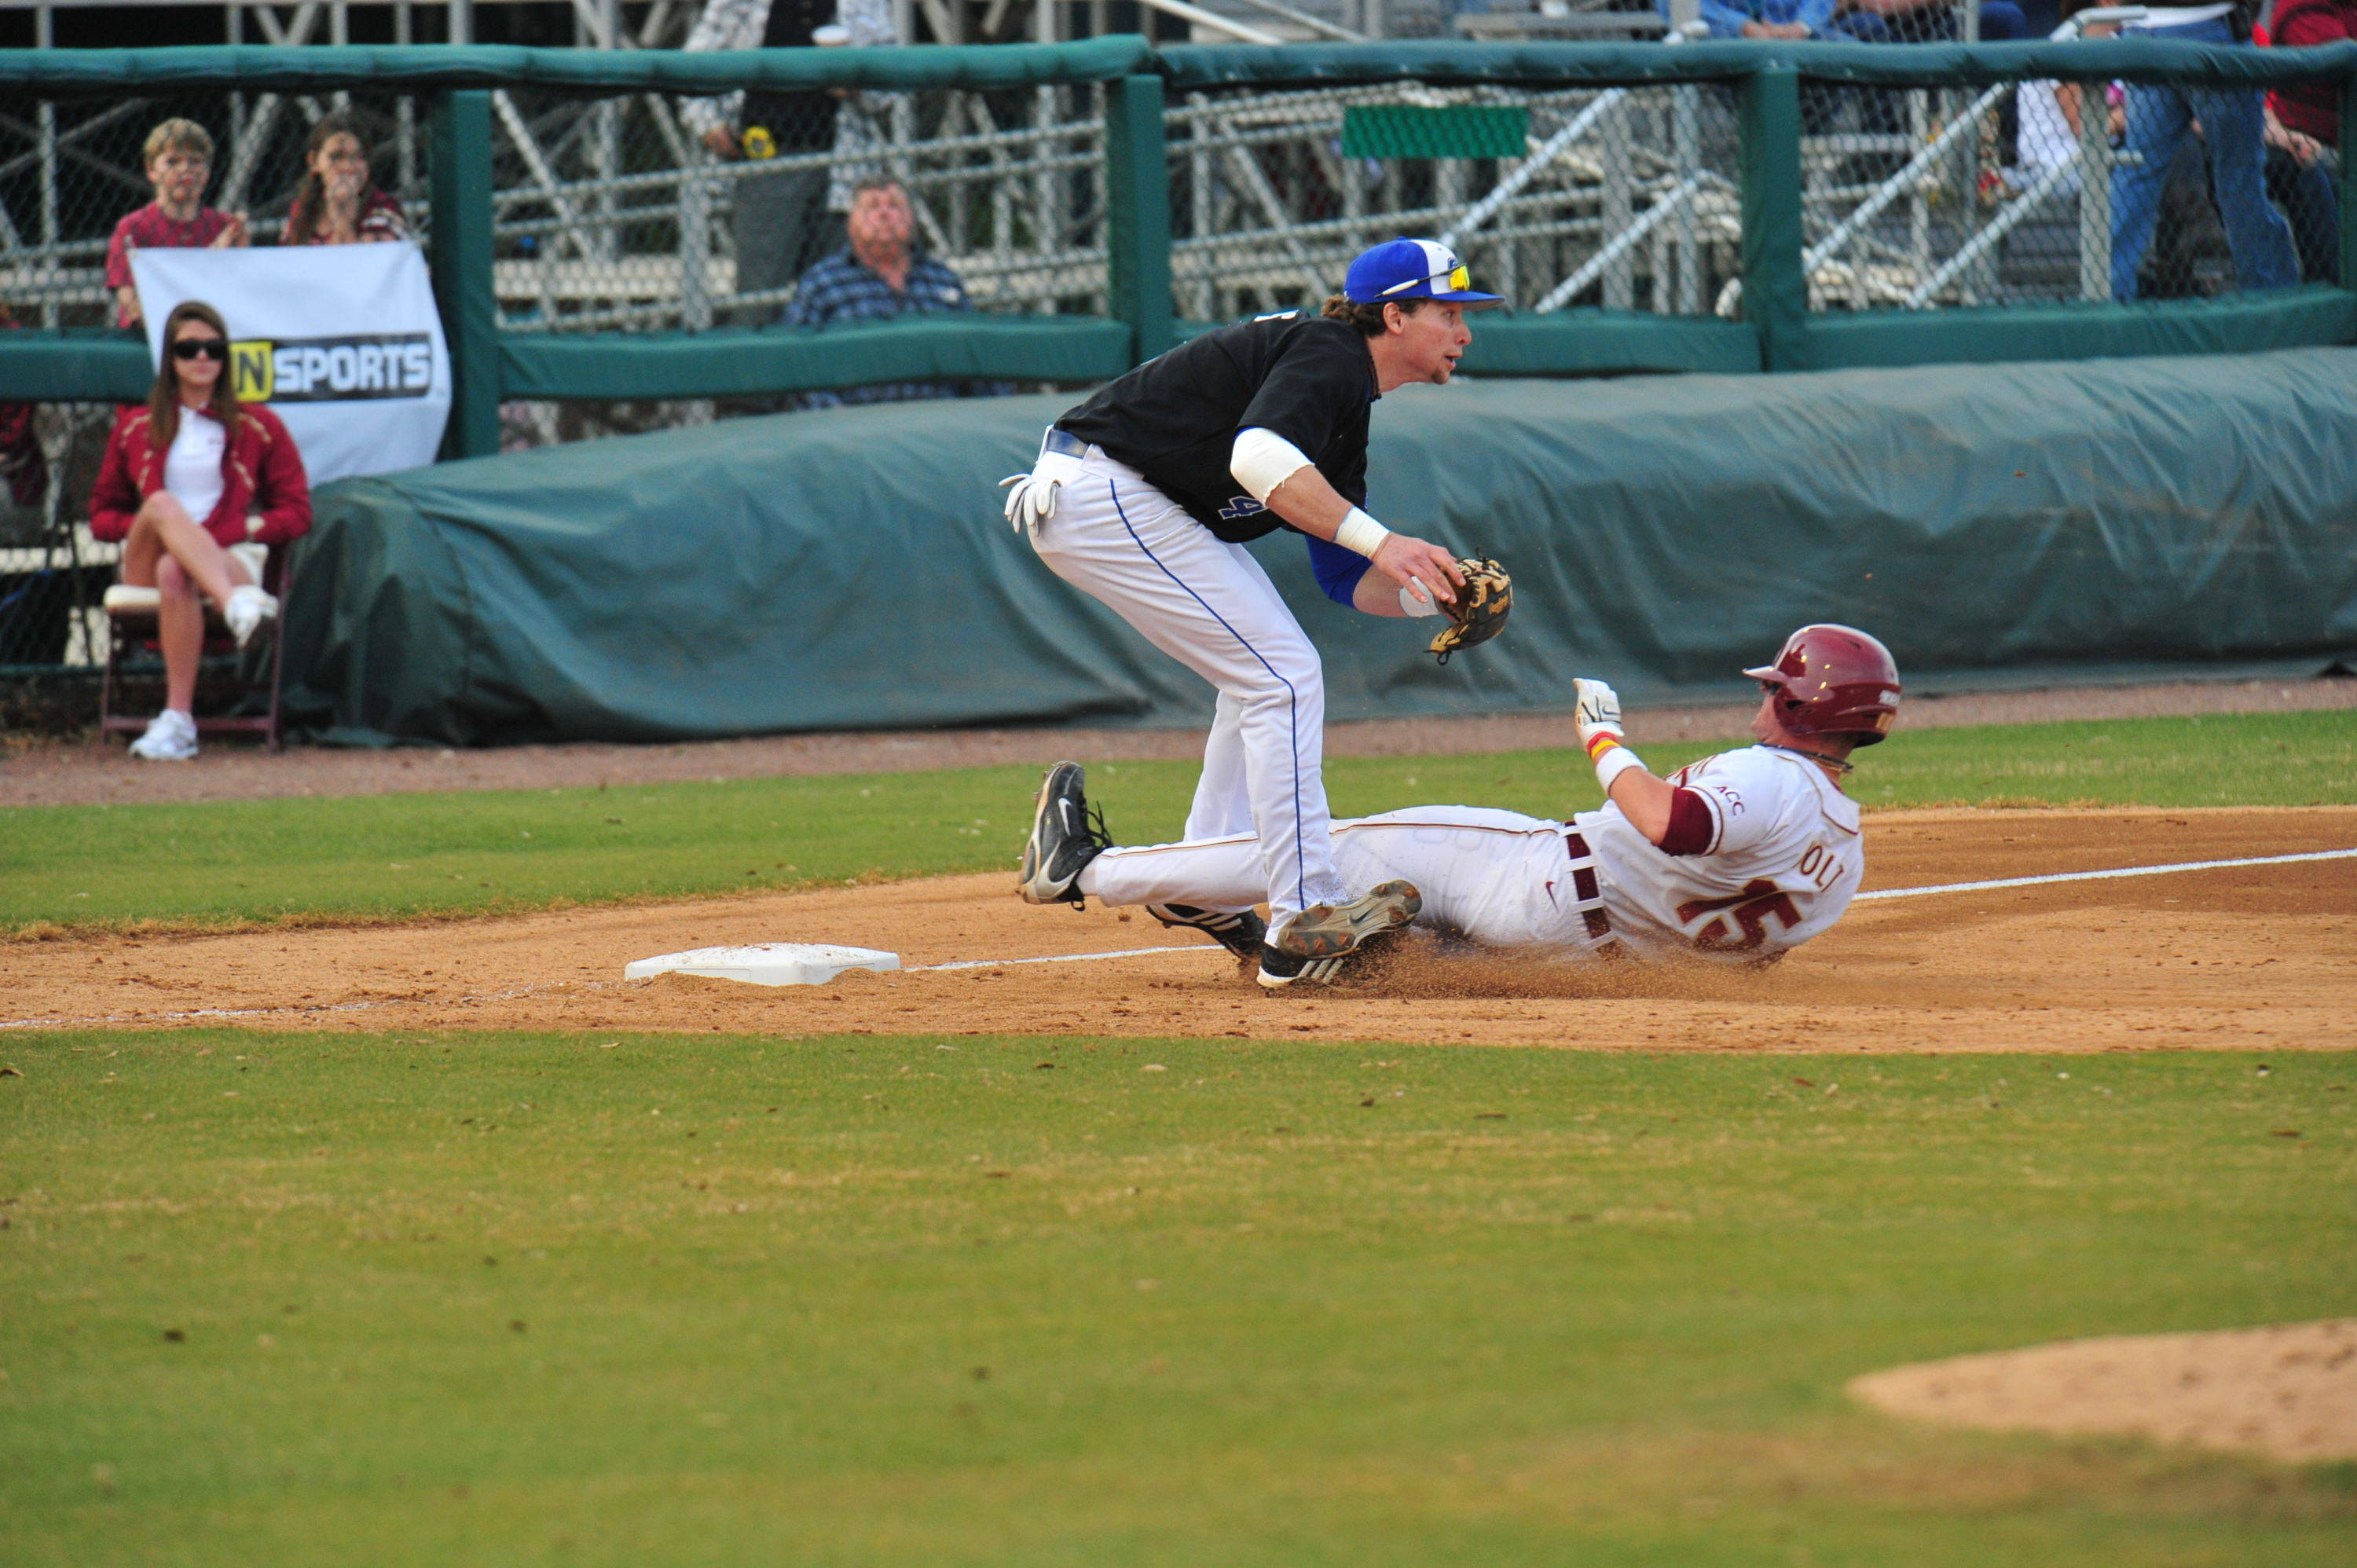 Tyler Holt slides in safely at third base